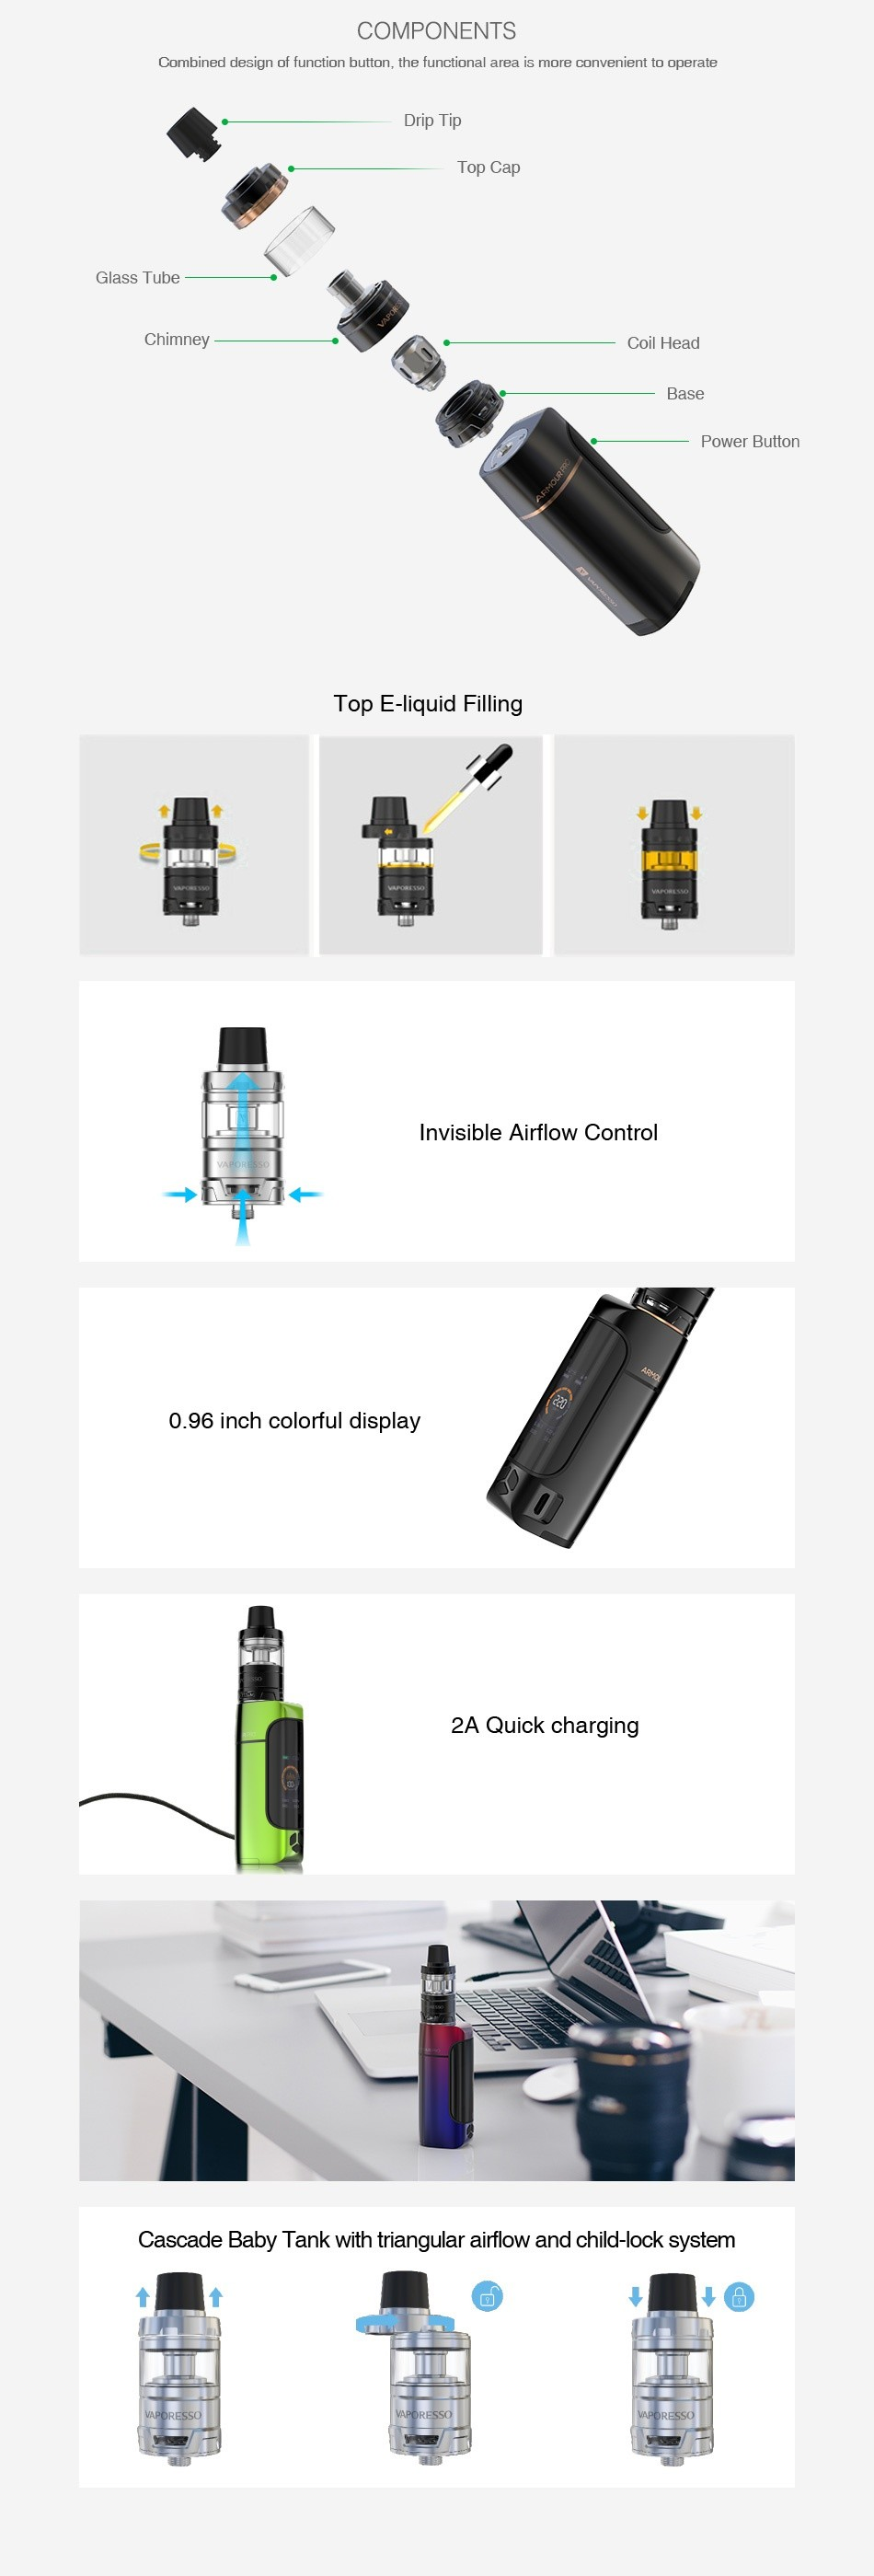 Vaporesso Armour Pro 100W TC Kit with Cascade Baby COMPONENTS Combined design af function button the functional area is more Drip Tip Class Tube op E liquid Filling nvisible airflow contro 0 96 inch colorful display 2A Cascade Baby Tank with triangular airflow and child lock system